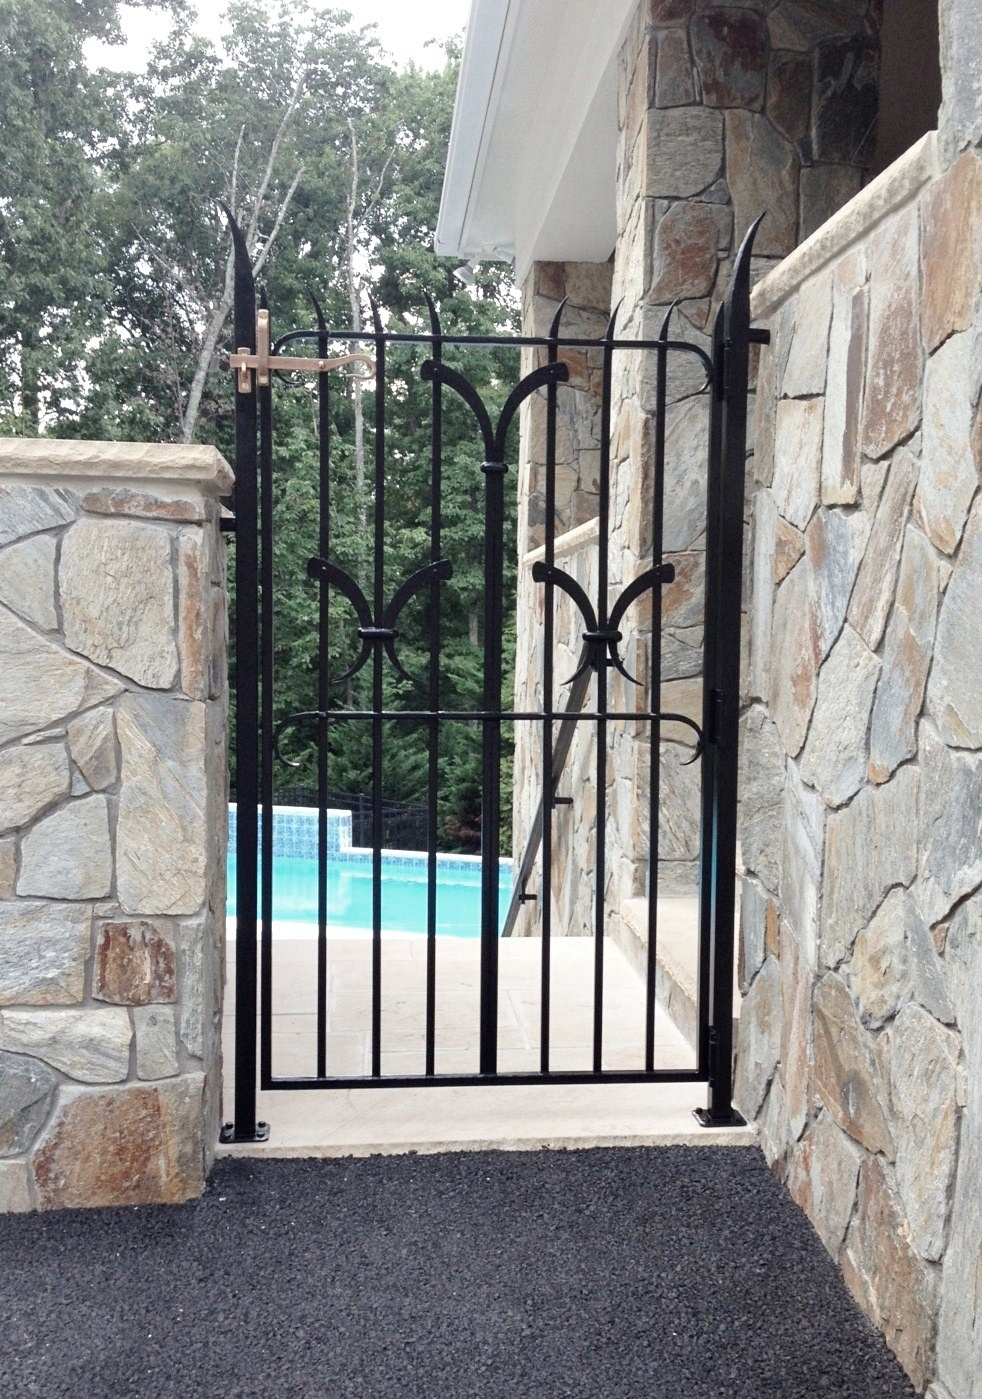 Poolside-gate-PH2014.jpg